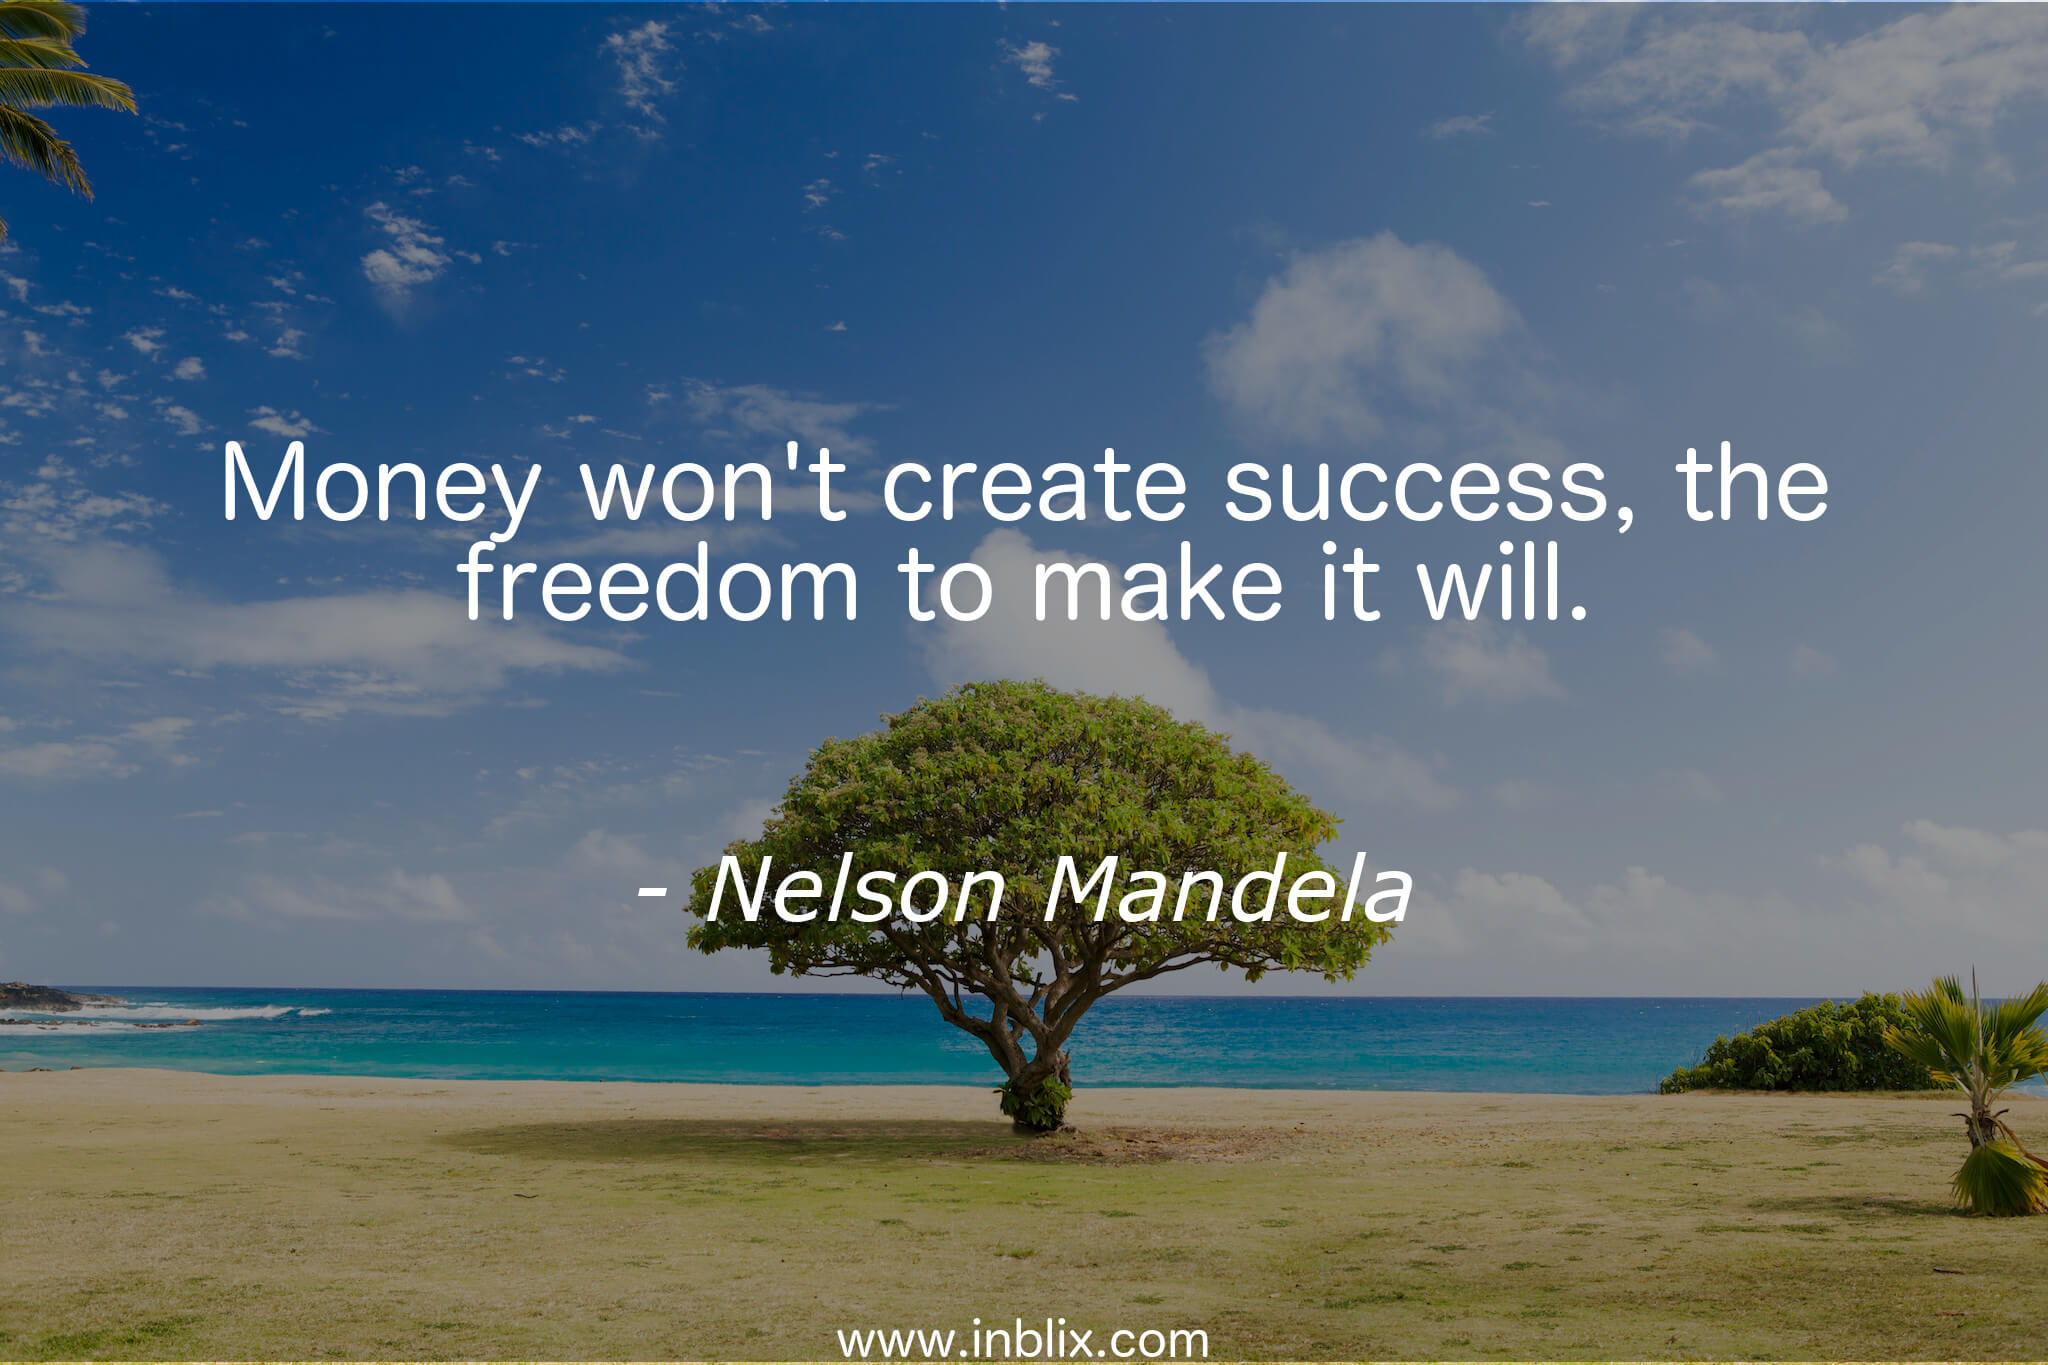 Money won't create success, the freedom to make it will.